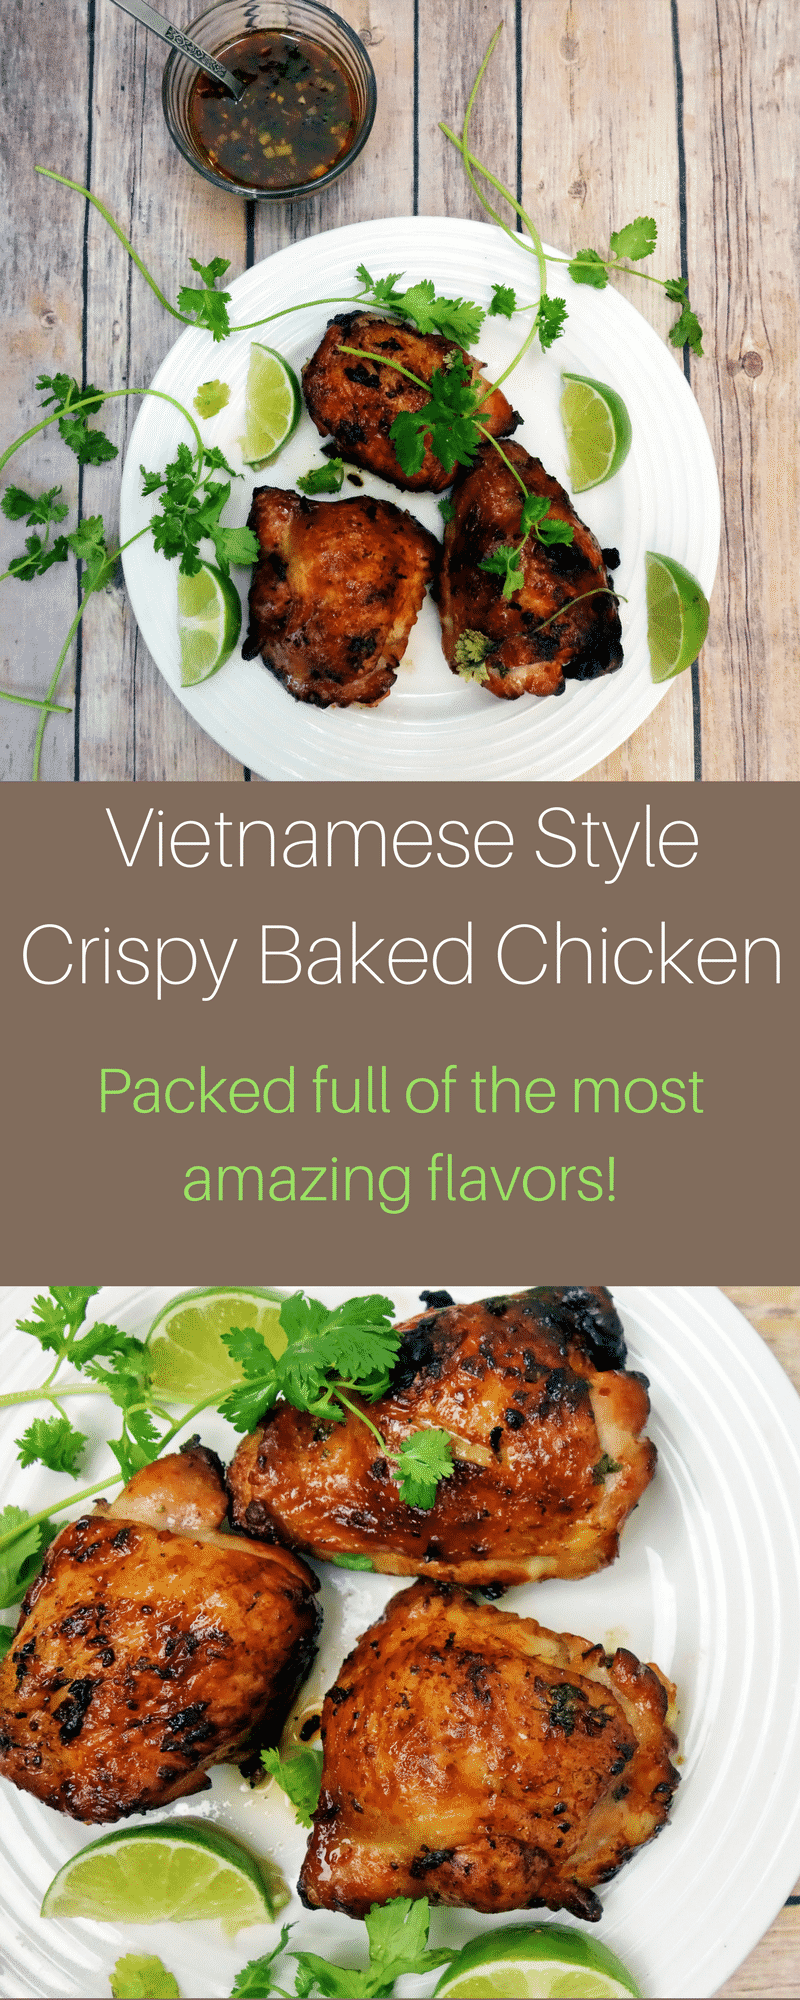 This Vietnamese style baked chicken with crispy skin is packed full of flavor and super simple to make!vietnamese chicken   fish sauce chicken   crispy baked chicken   easy Vietnamese recipe   chicken recipes   best chicken recipes   easy Vietnamese chicken   garlic chicken   crispy baked garlic chicken